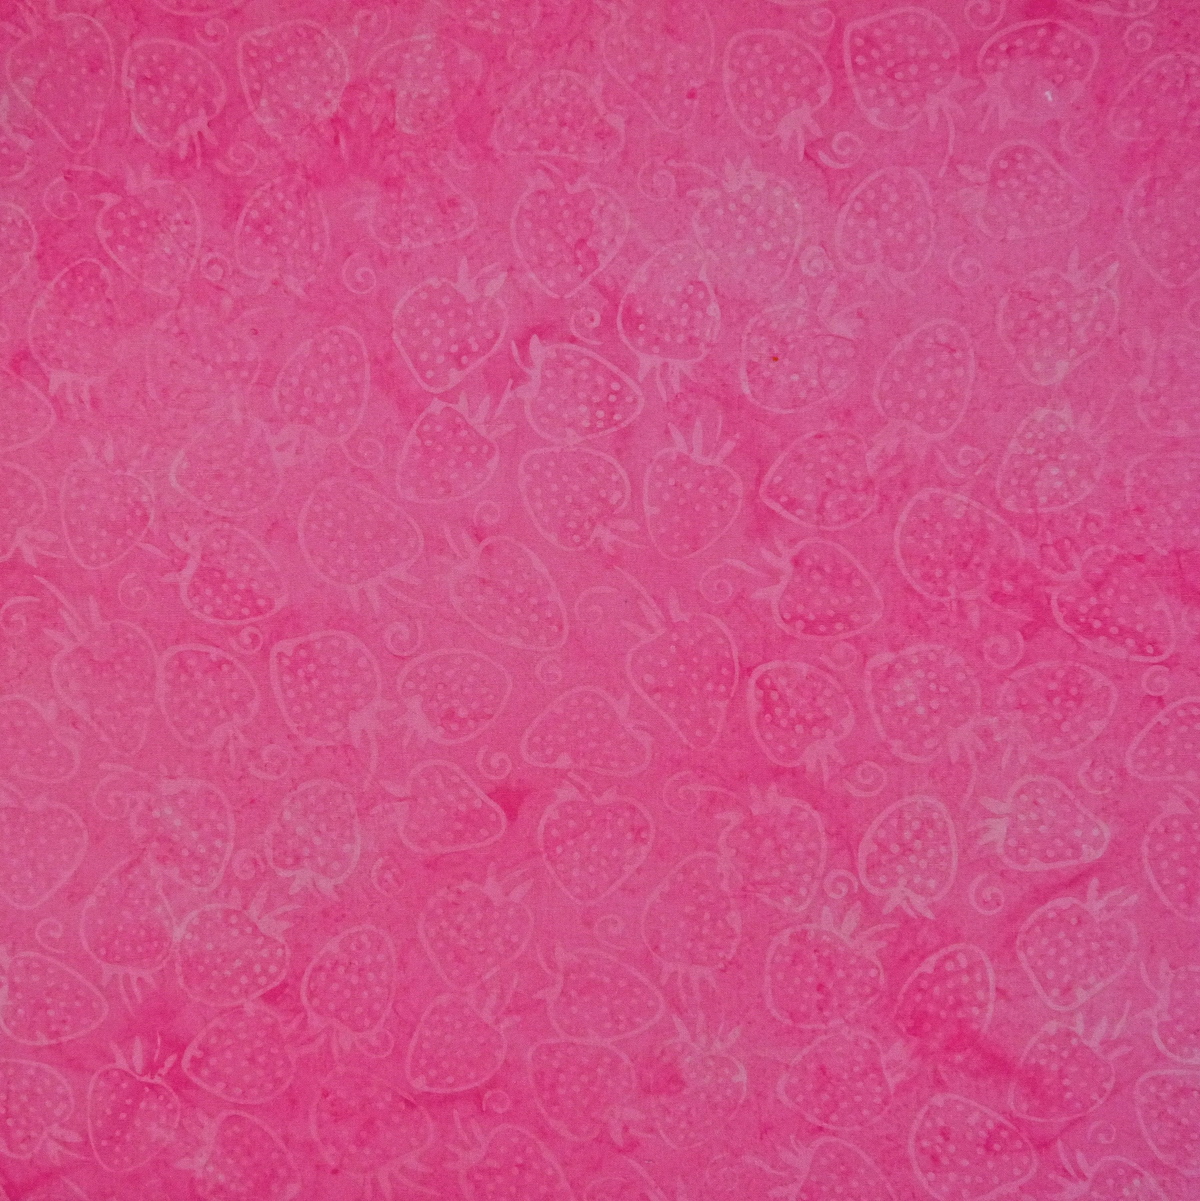 AG-15-9064 Video Pink